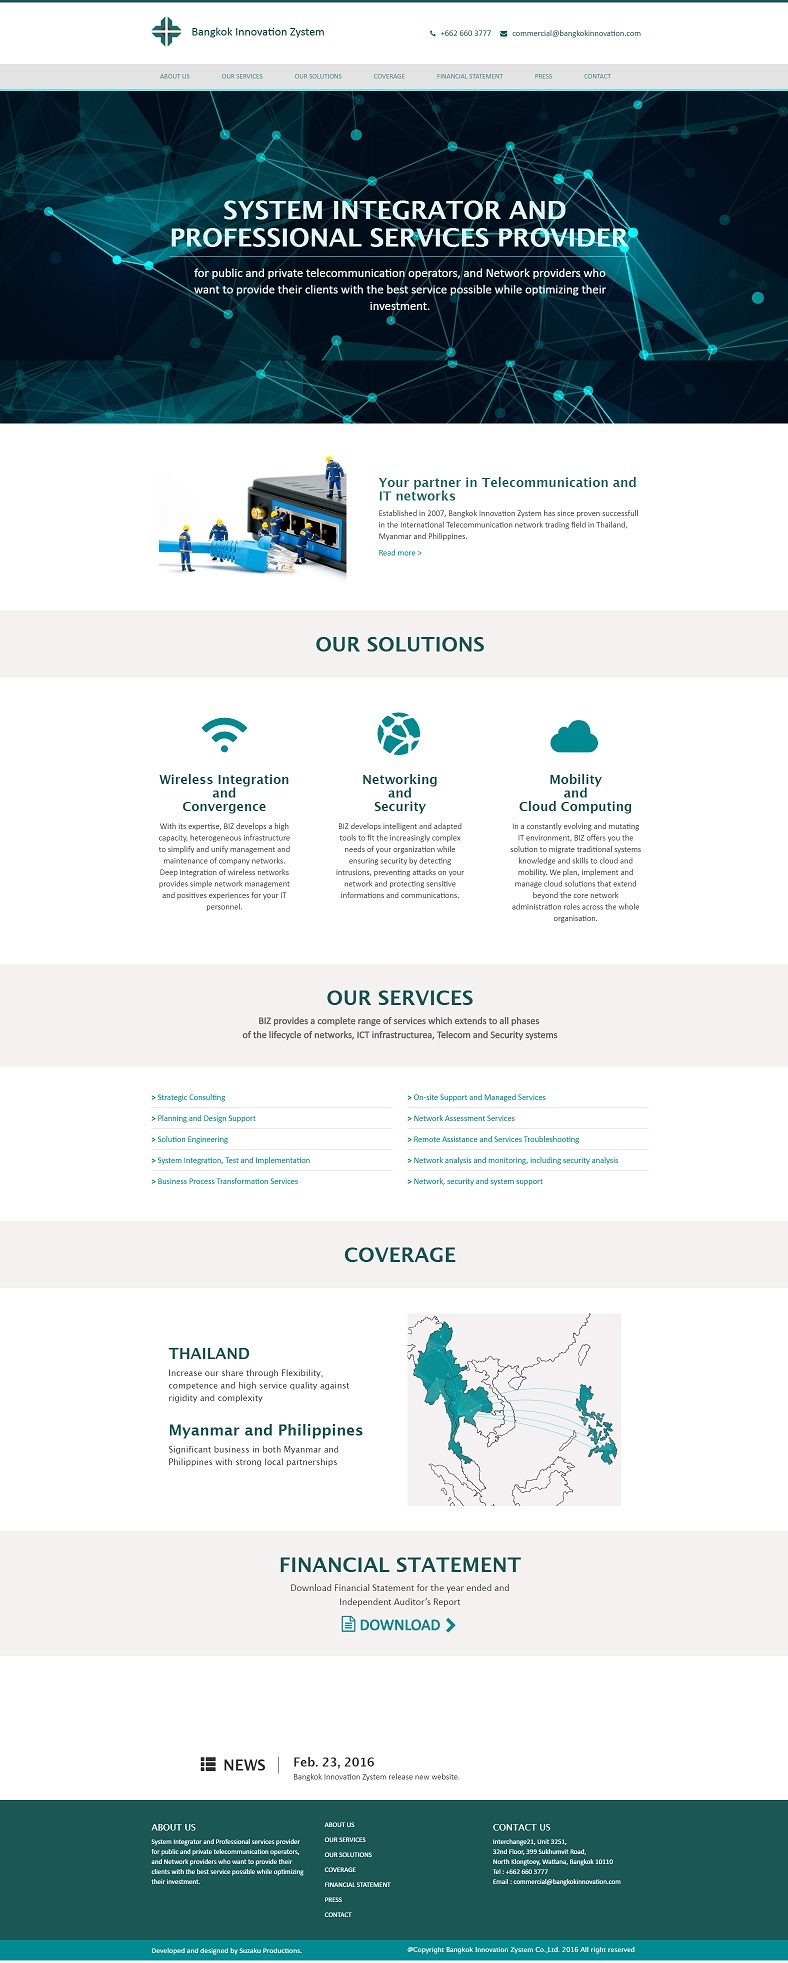 BIZ Desktop webdesign by Suzaku